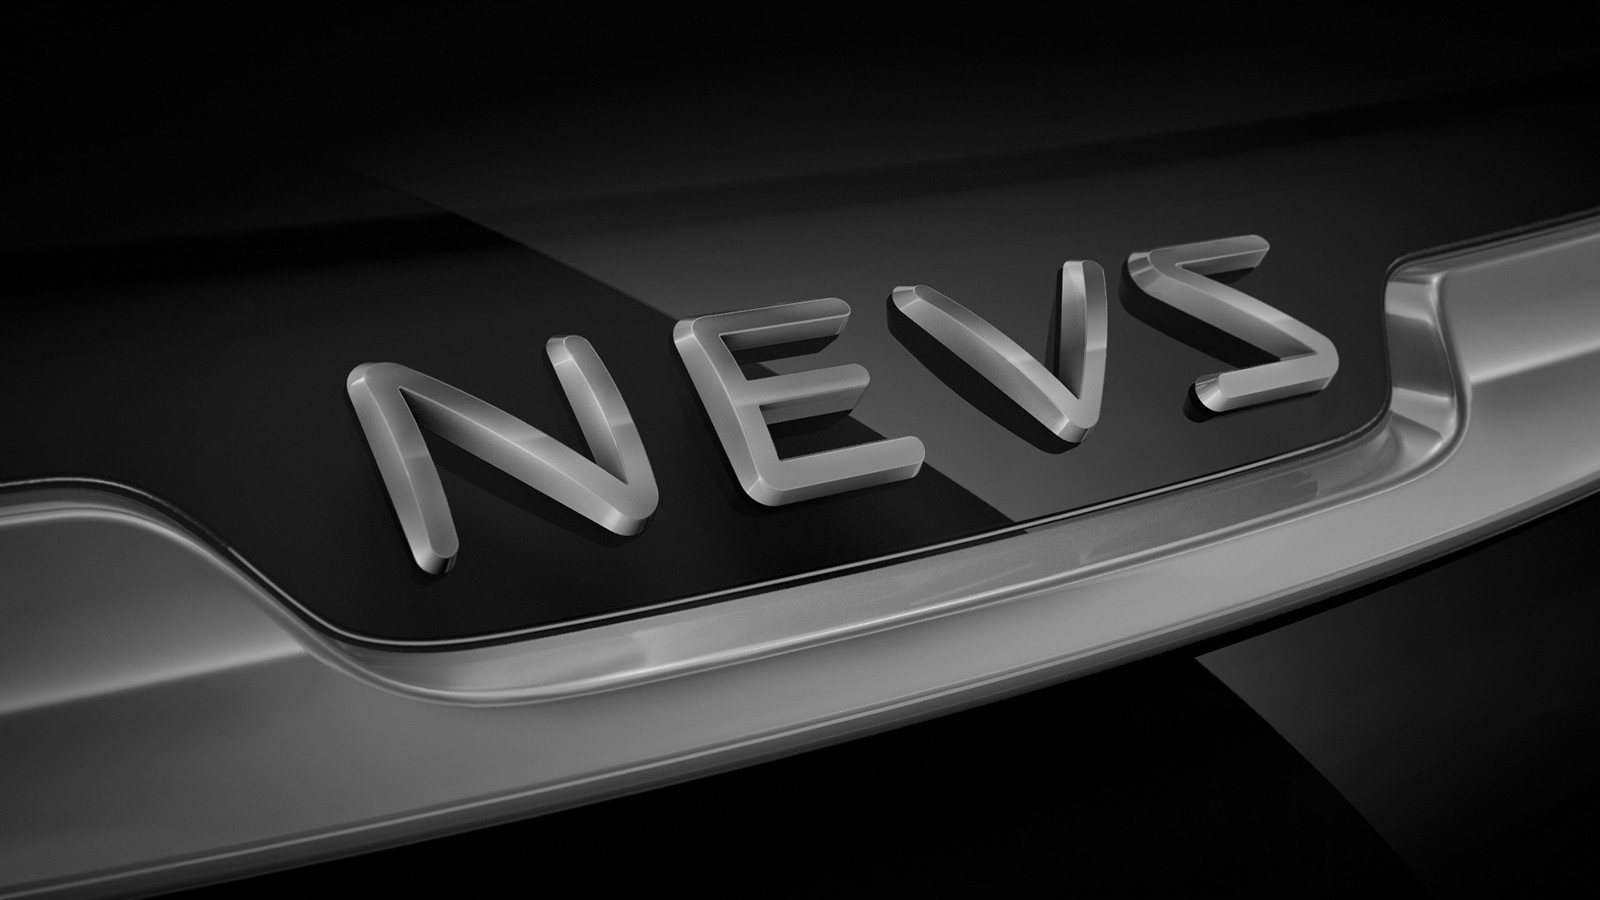 nevs_grill_image